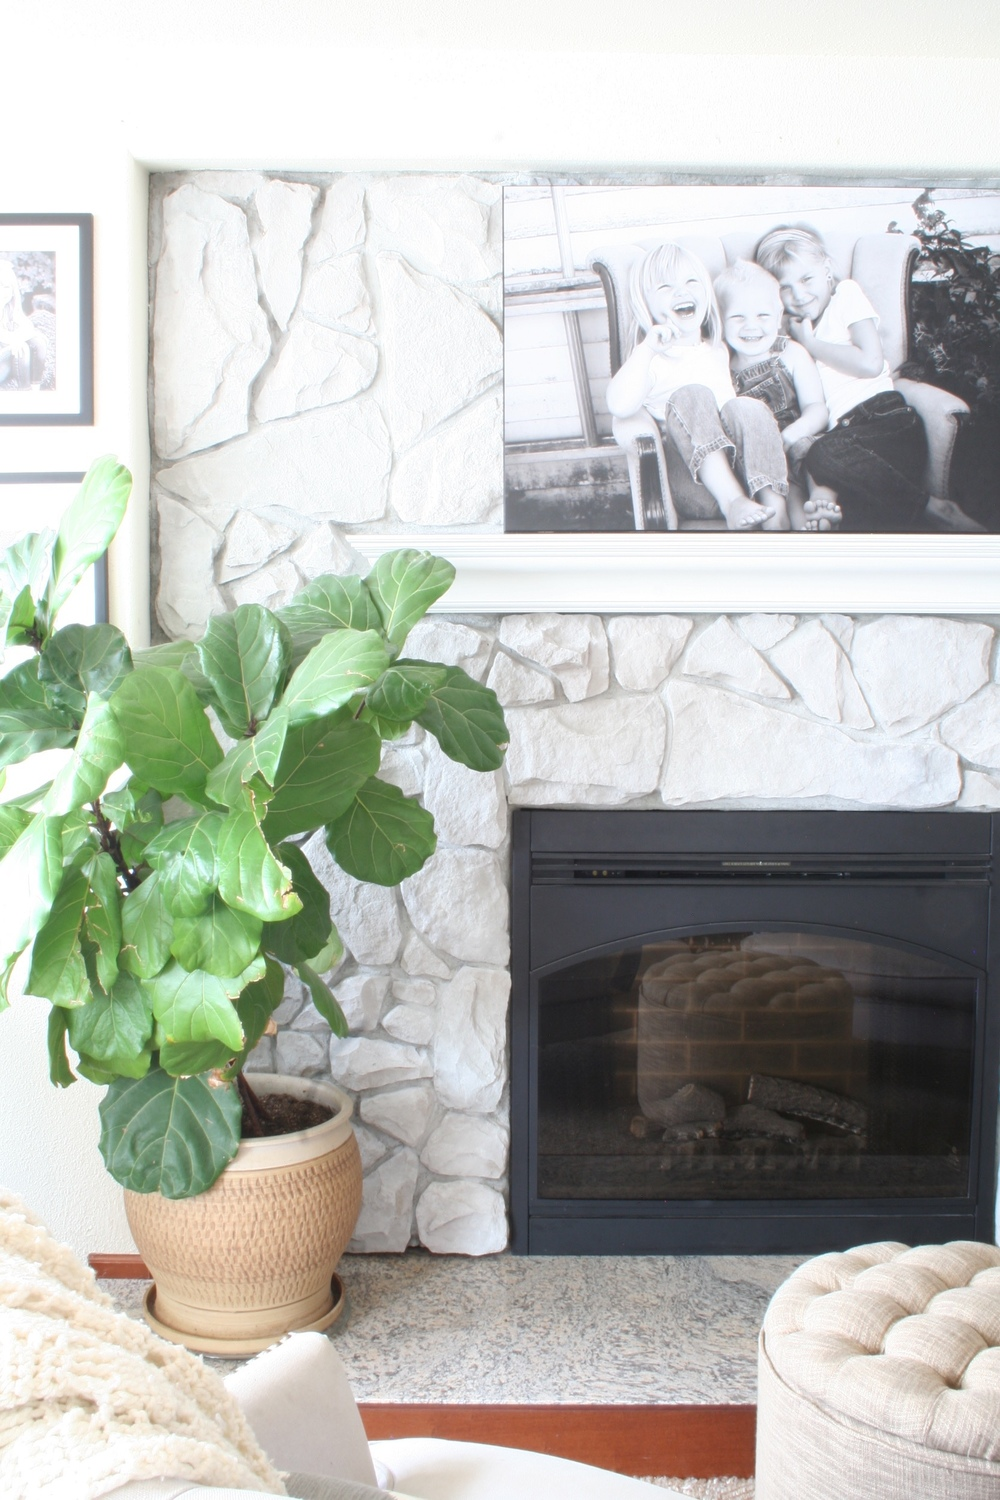 How To Whitewash Stone Diy Fireplace Makeover — Coastal. Ombre Rug. Big Houses. Fireplace Hearth Stone Slab. Dining Table Lighting. Ventless Gas Fireplace. Best Paint Brand. Miele Appliances. Wall Sconce Lighting